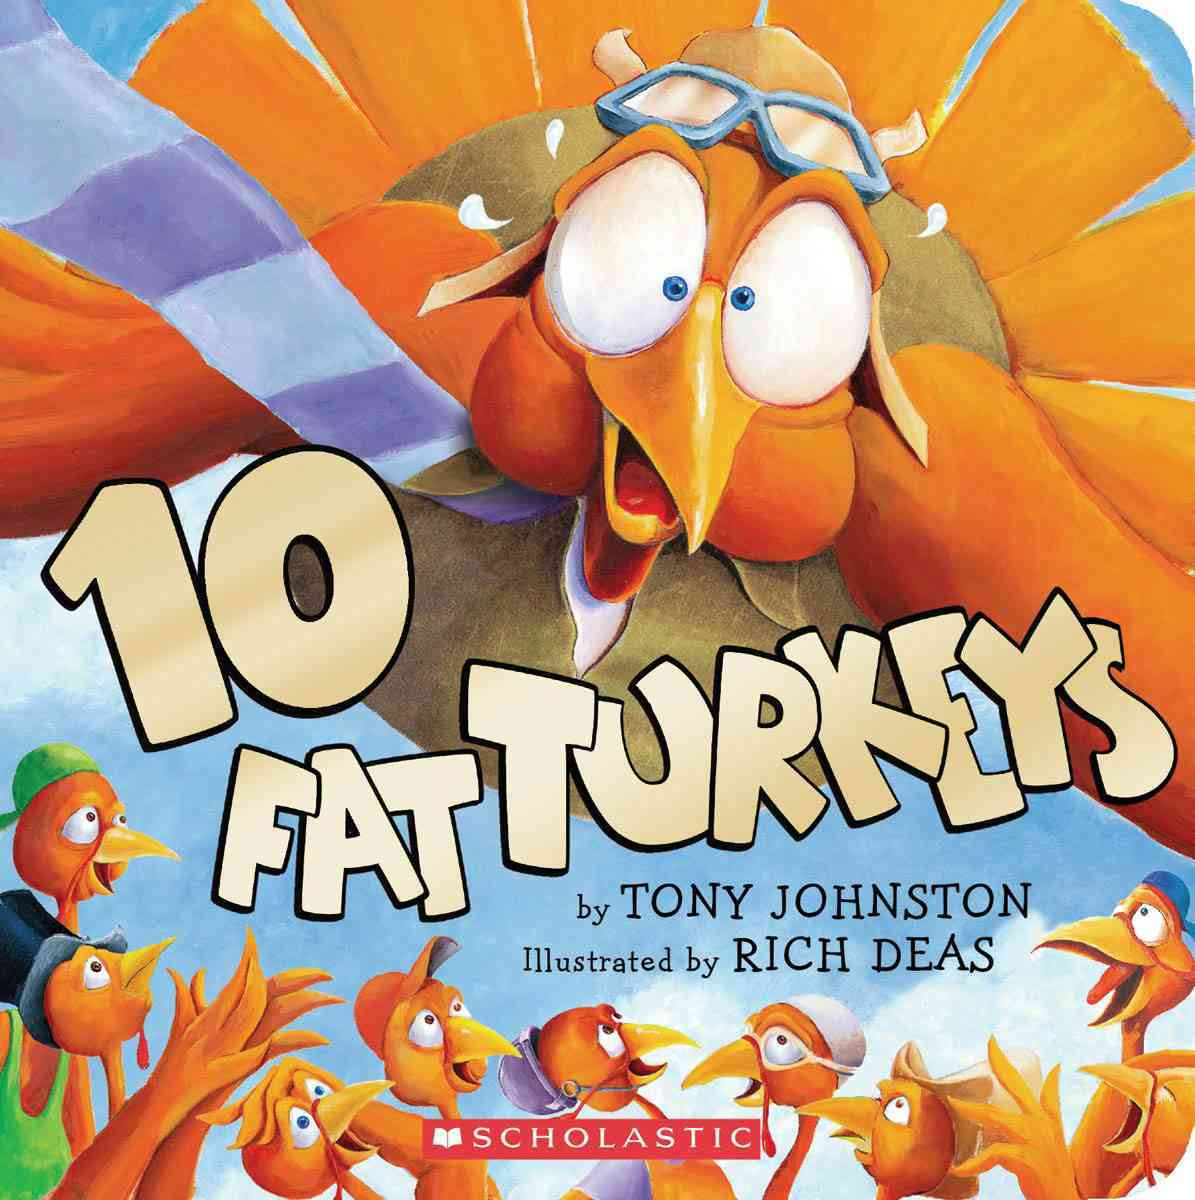 10 Fat Turkeys (Board book)